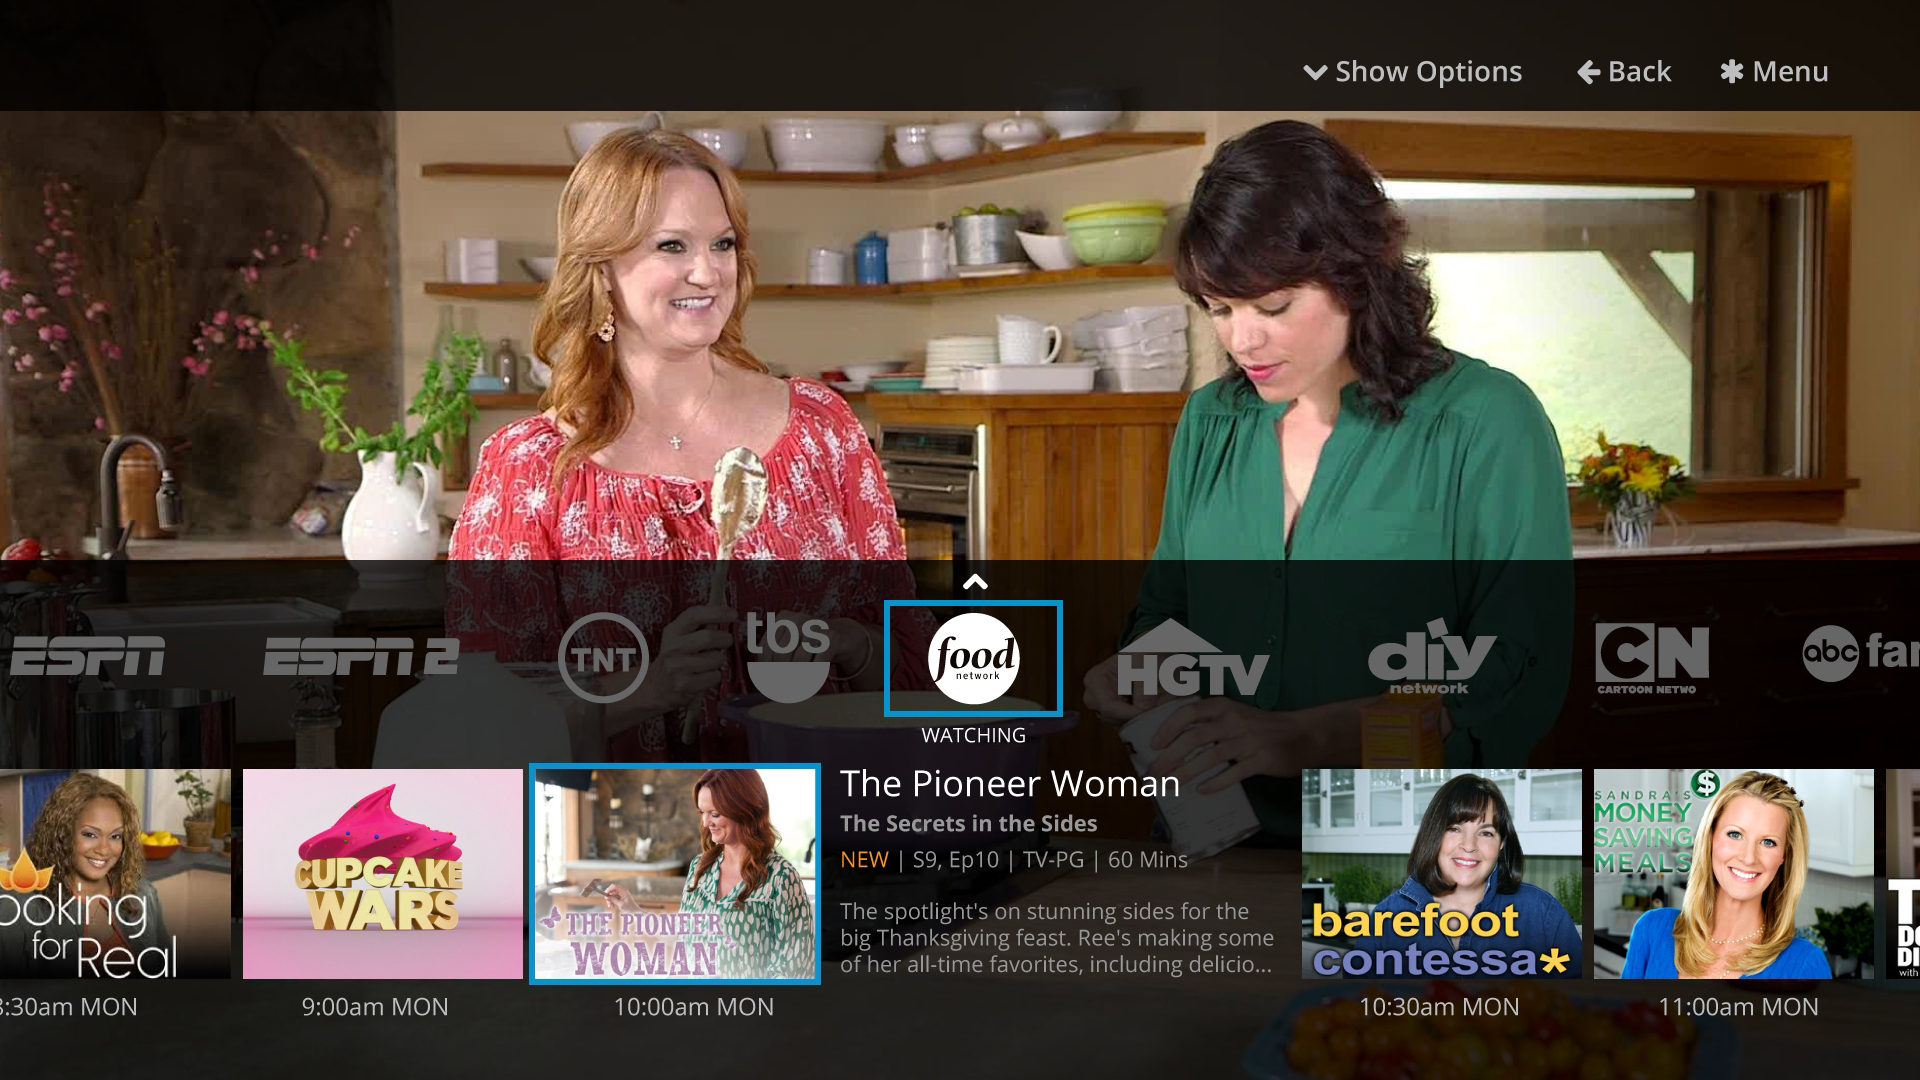 Dish Network's new live Sling TV service will work with iOS devices and Macs